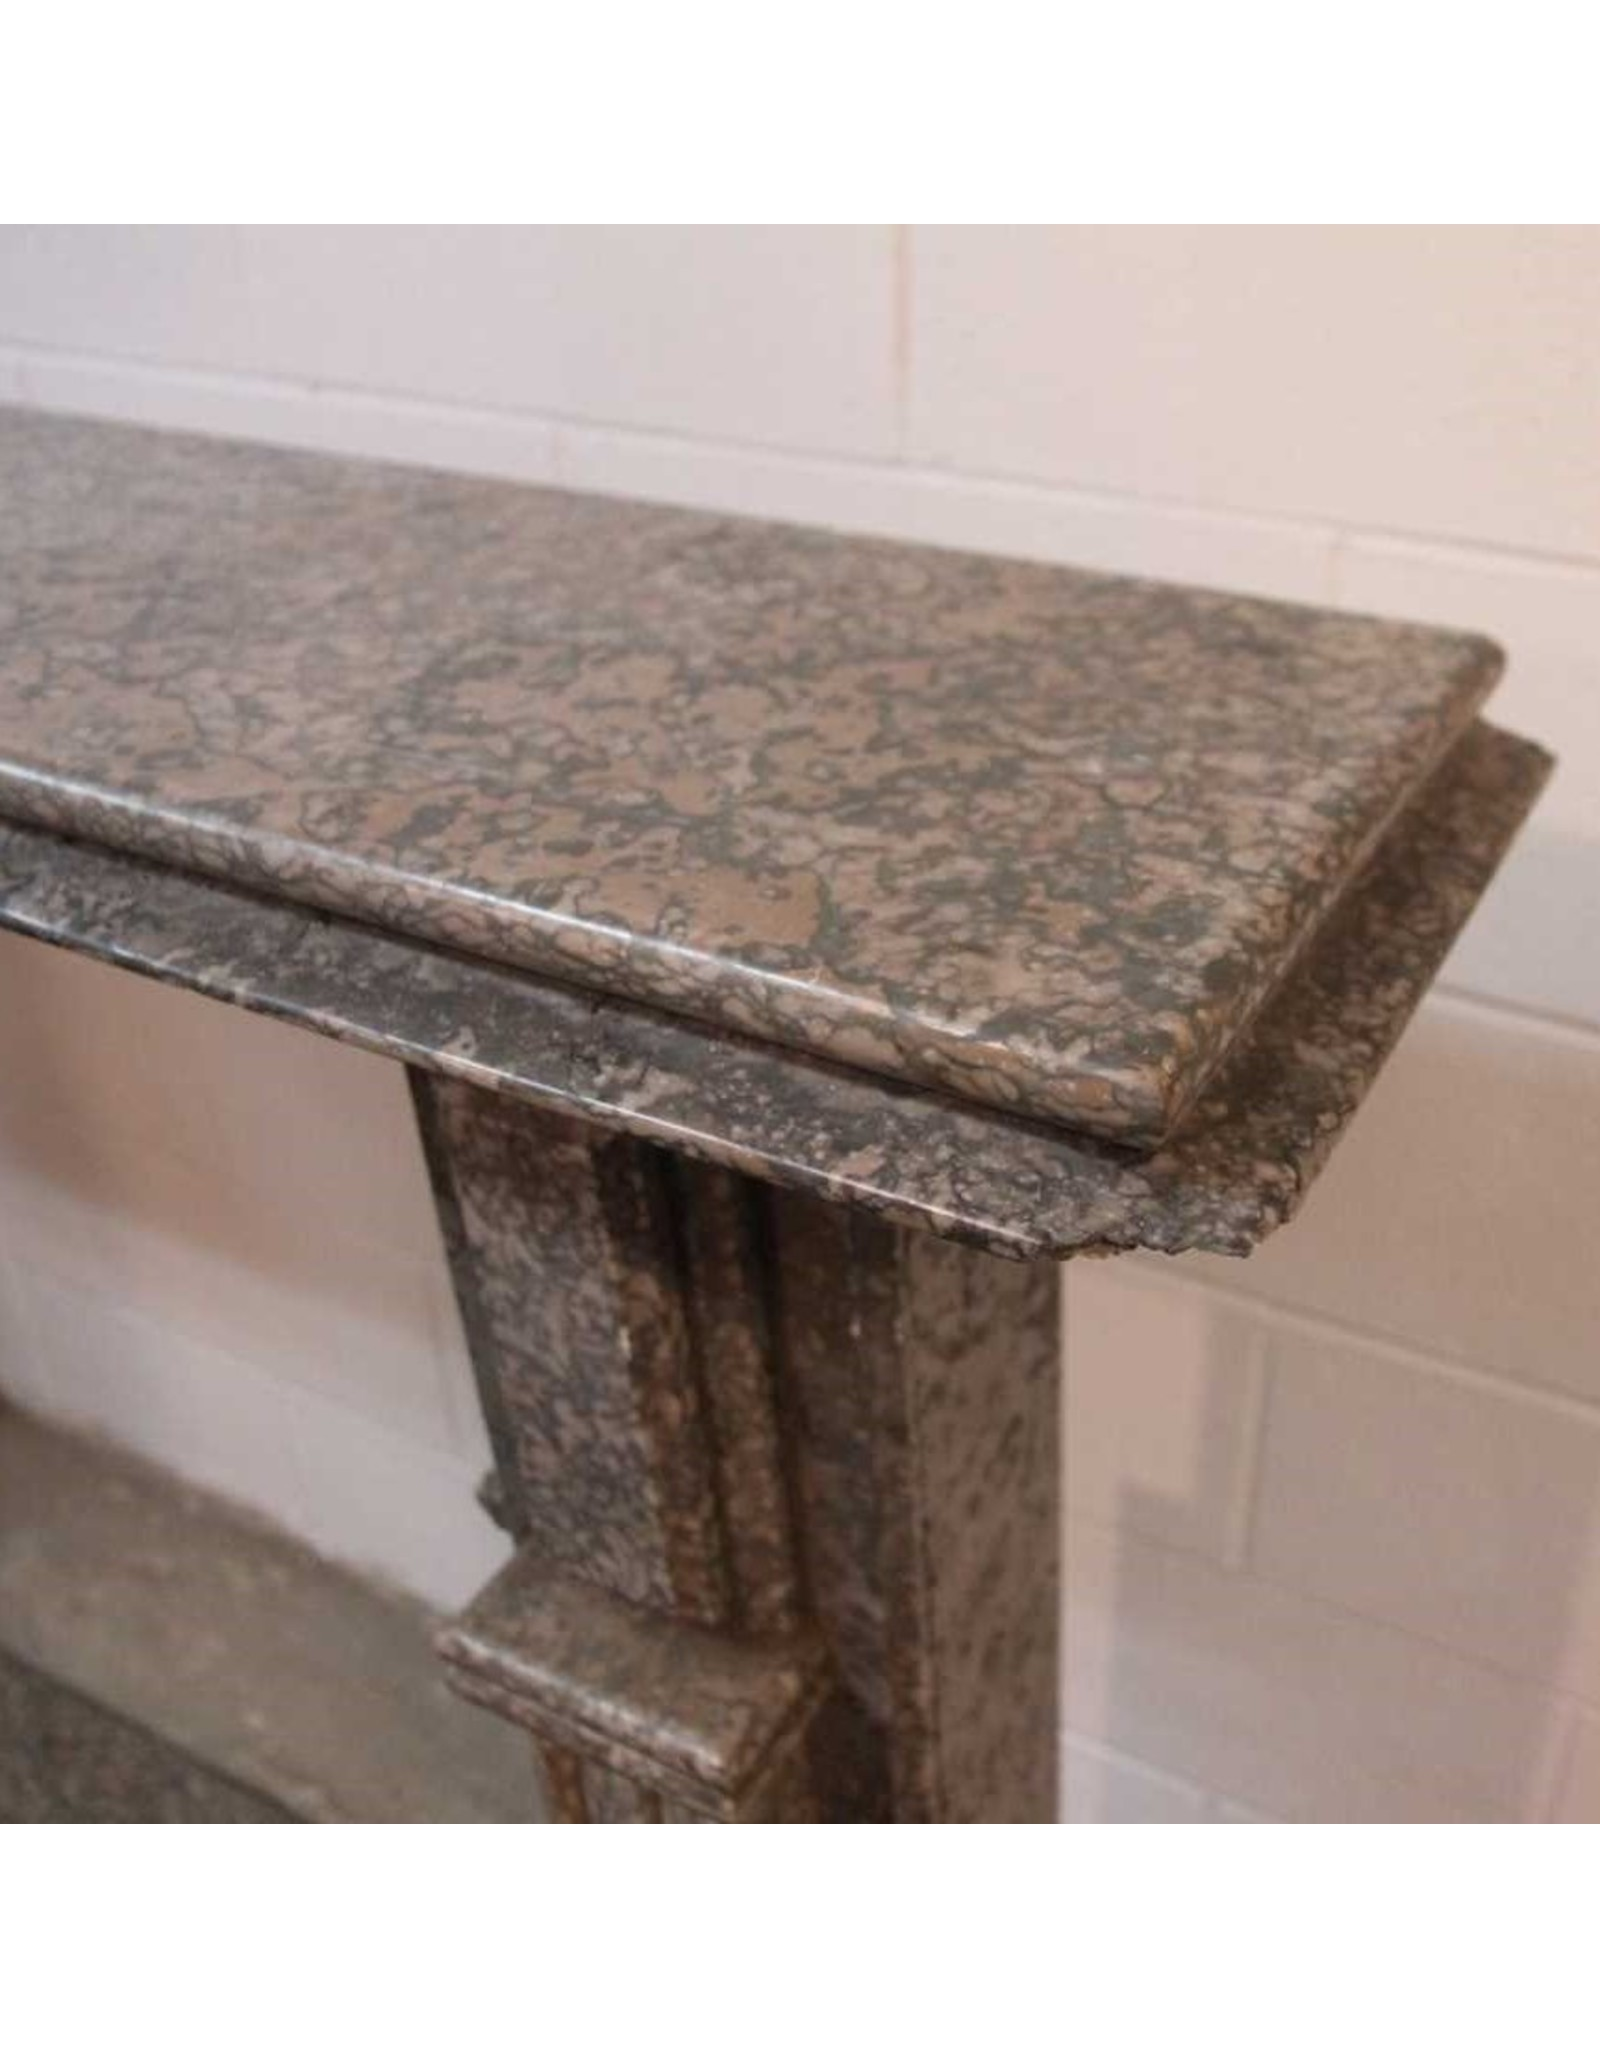 Fireplace surround - grey marble / granite